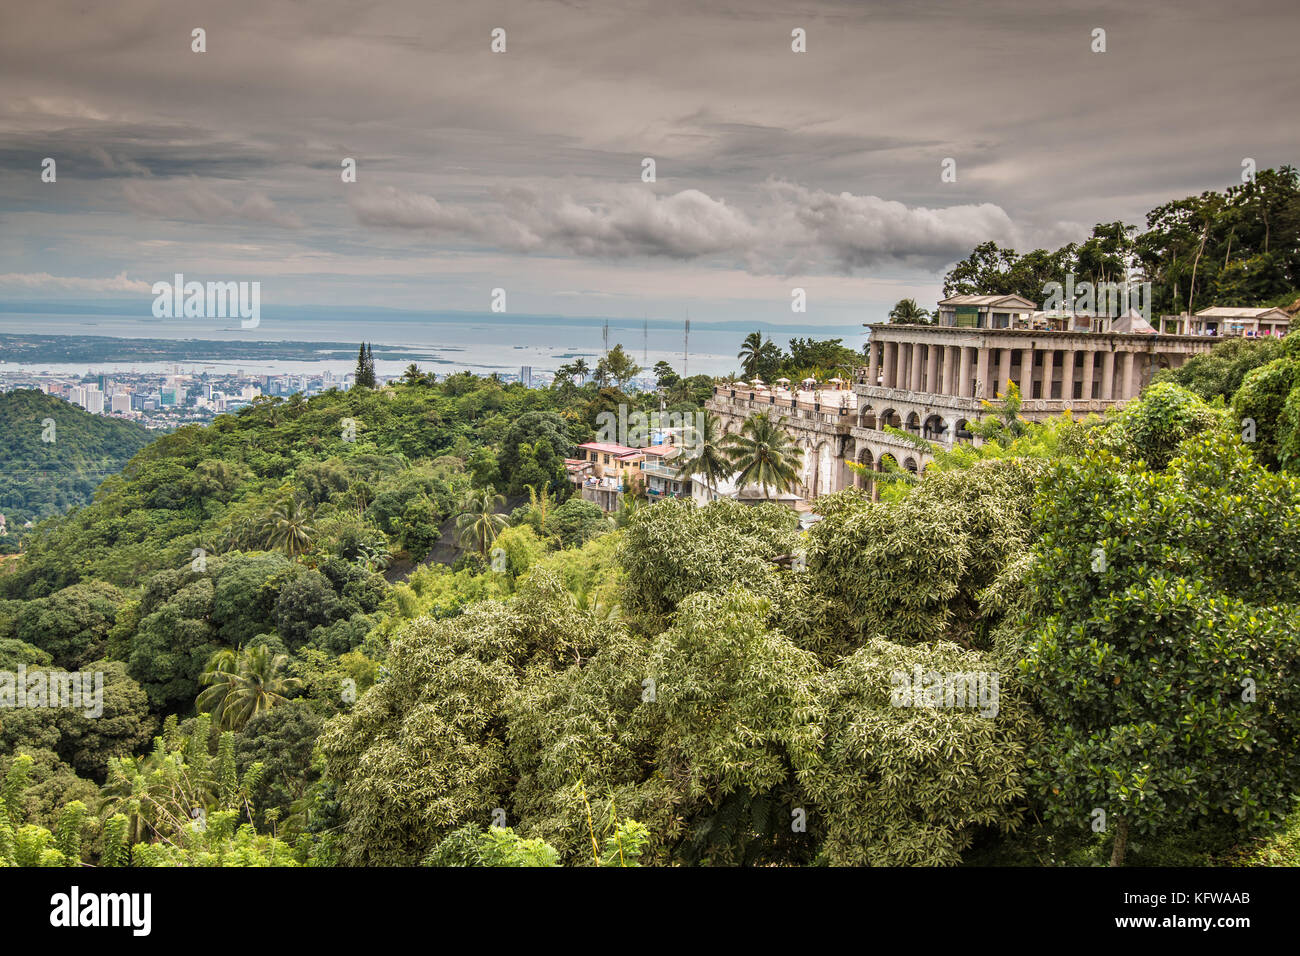 Temple of Leah in Cebu Philippines - Stock Image